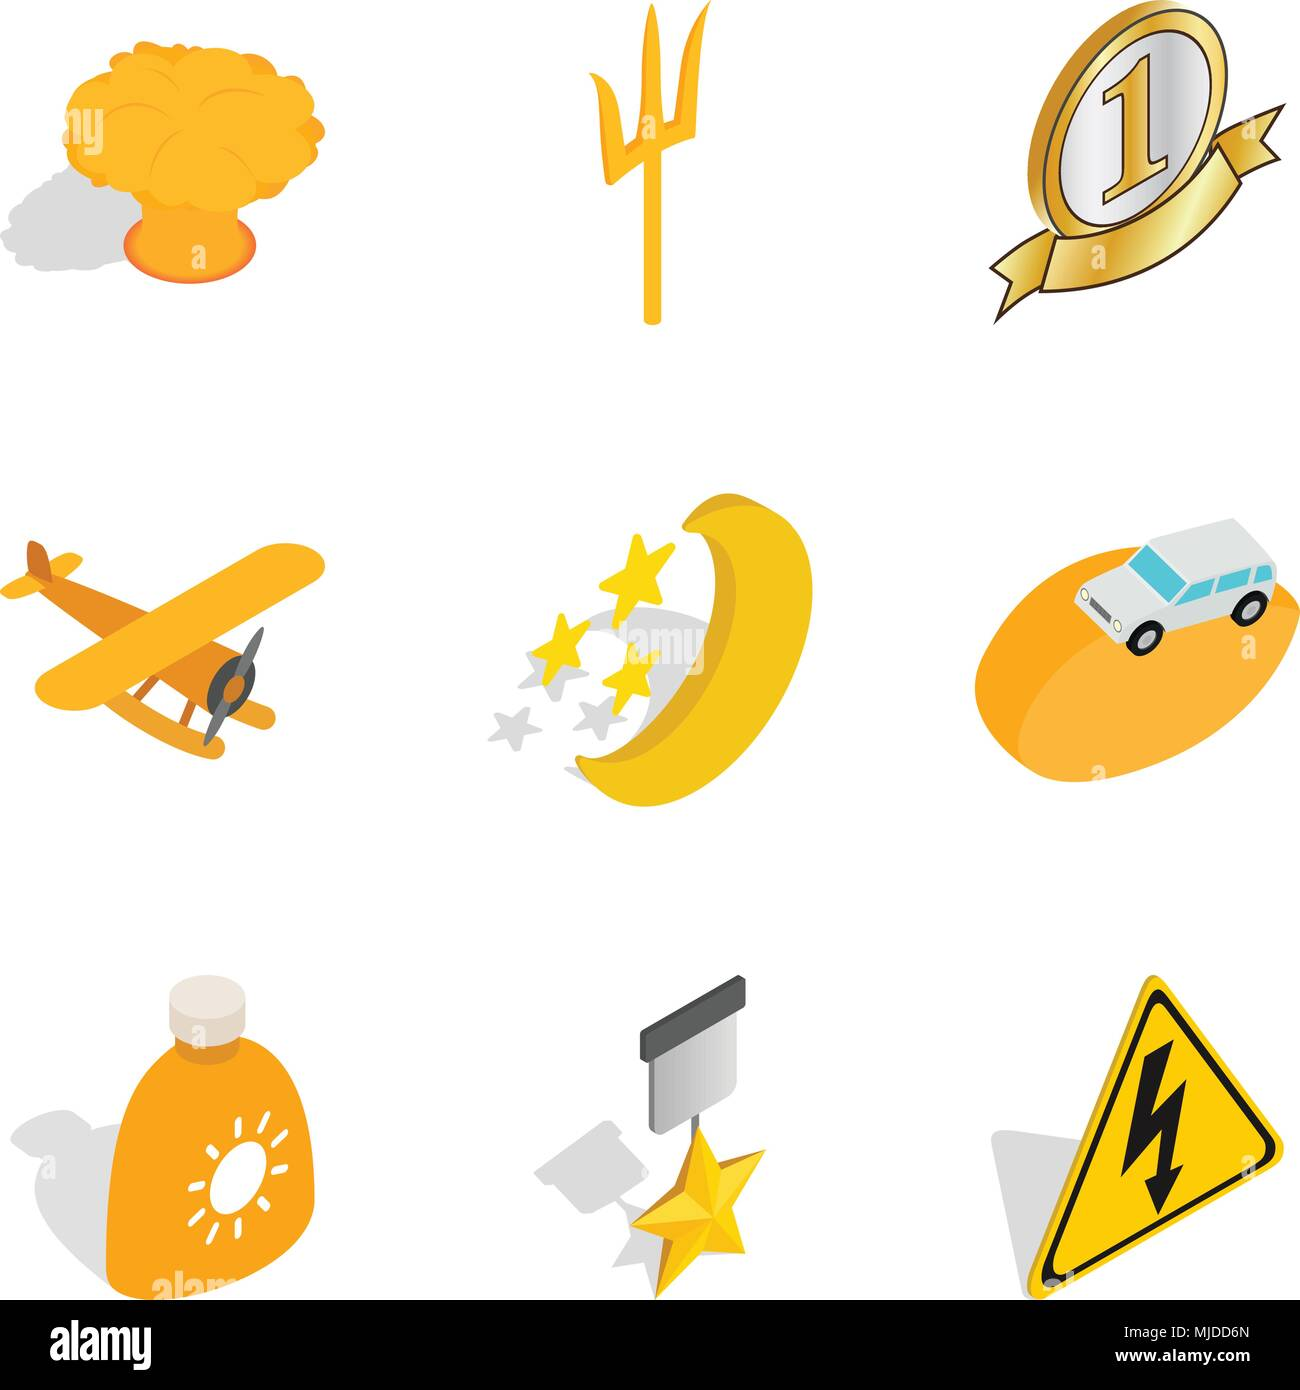 Best place icons set, isometric style Stock Vector